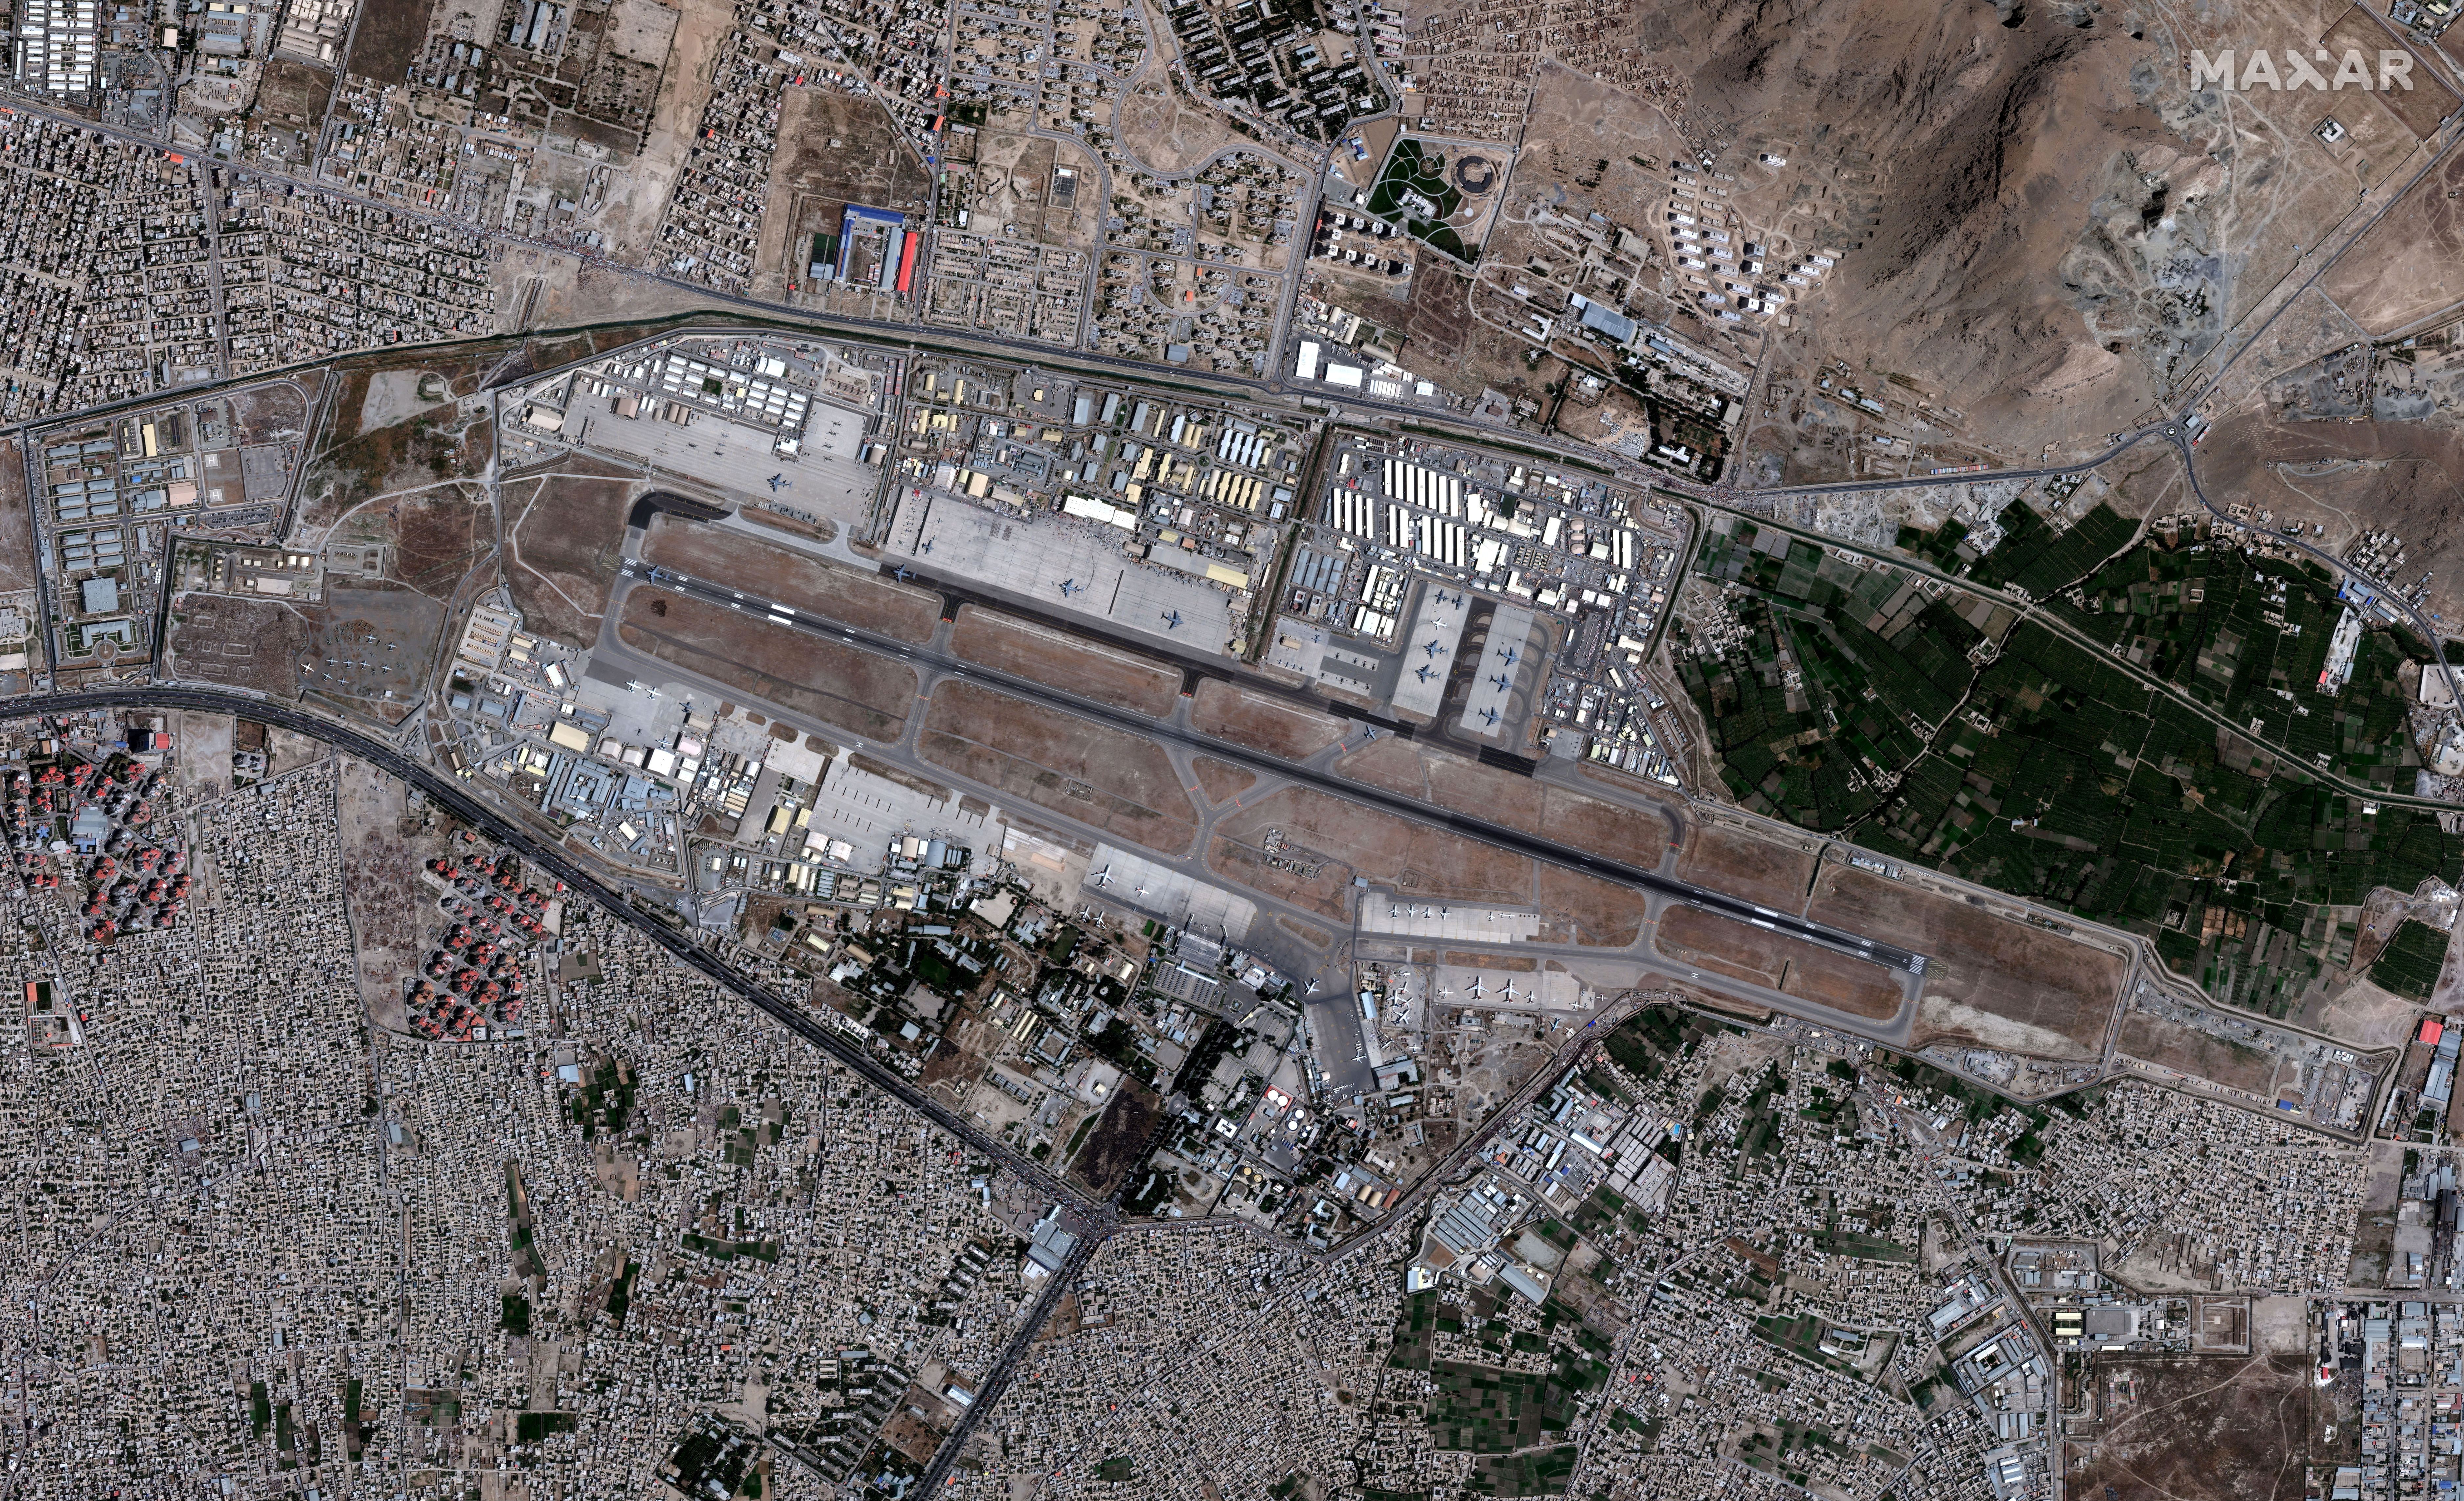 An overview of the Hamid Karzai International Airport, in Kabul, Afghanistan August 24, 2021, in this satellite image obtained by Reuters on August 26, 2021.  Satellite image 2021 Maxar Technologies/Handout via REUTERS.